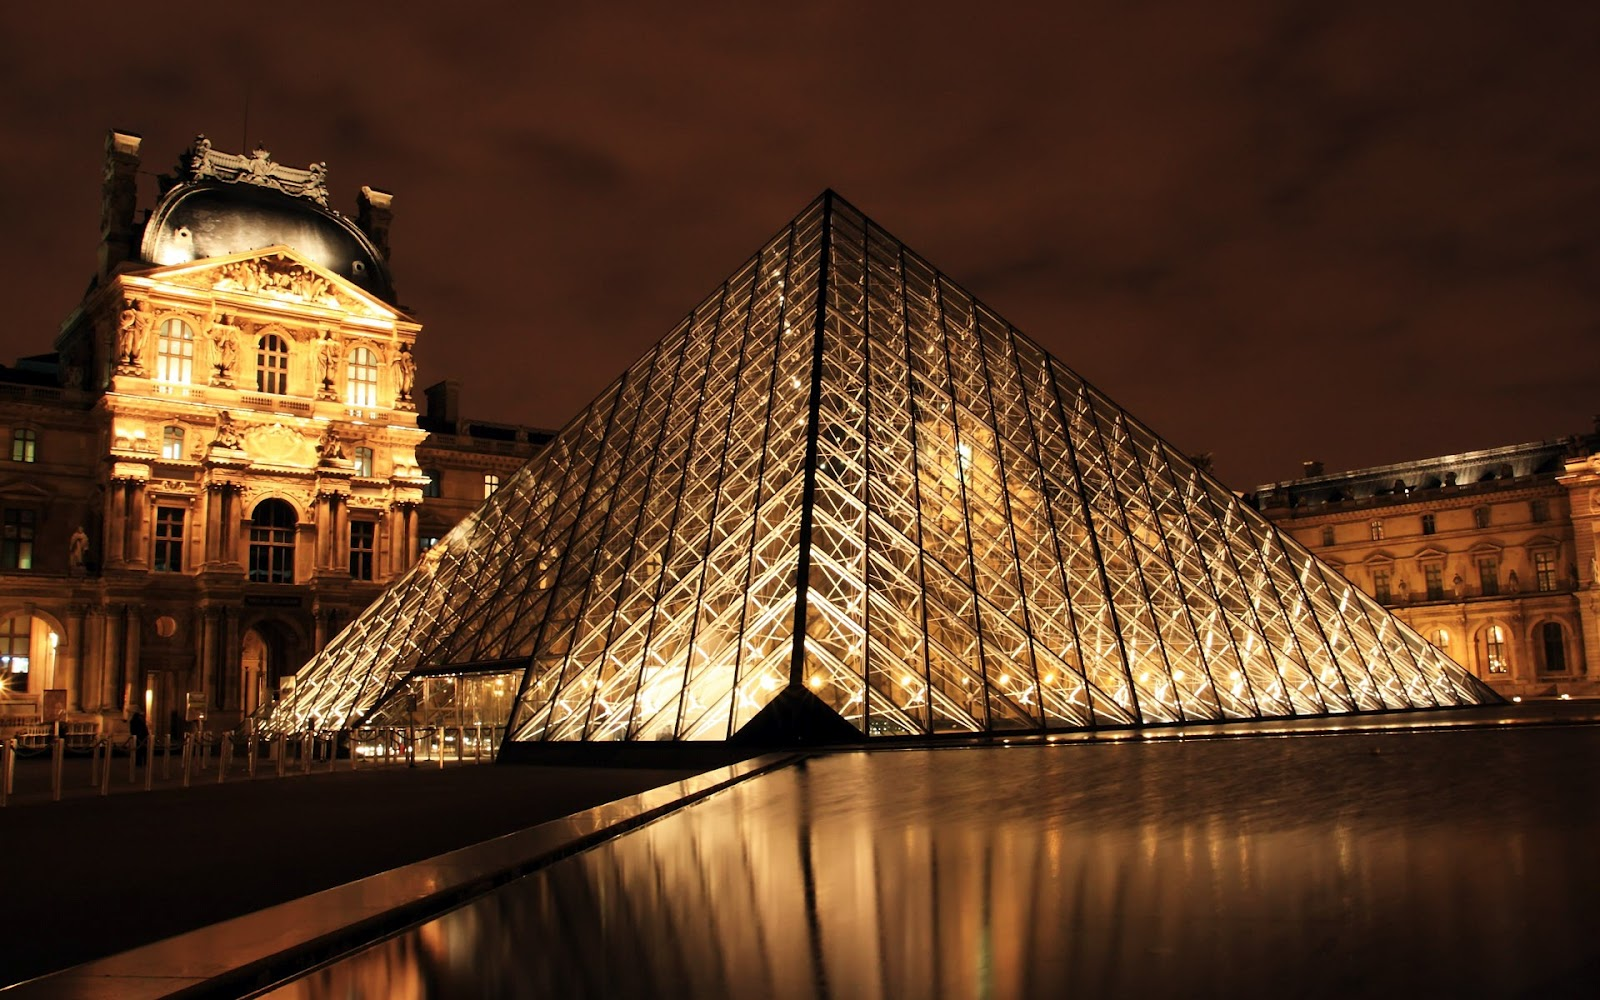 Best 46 Louvre Wallpaper on HipWallpaper Louvre Wallpaper 1600x1000